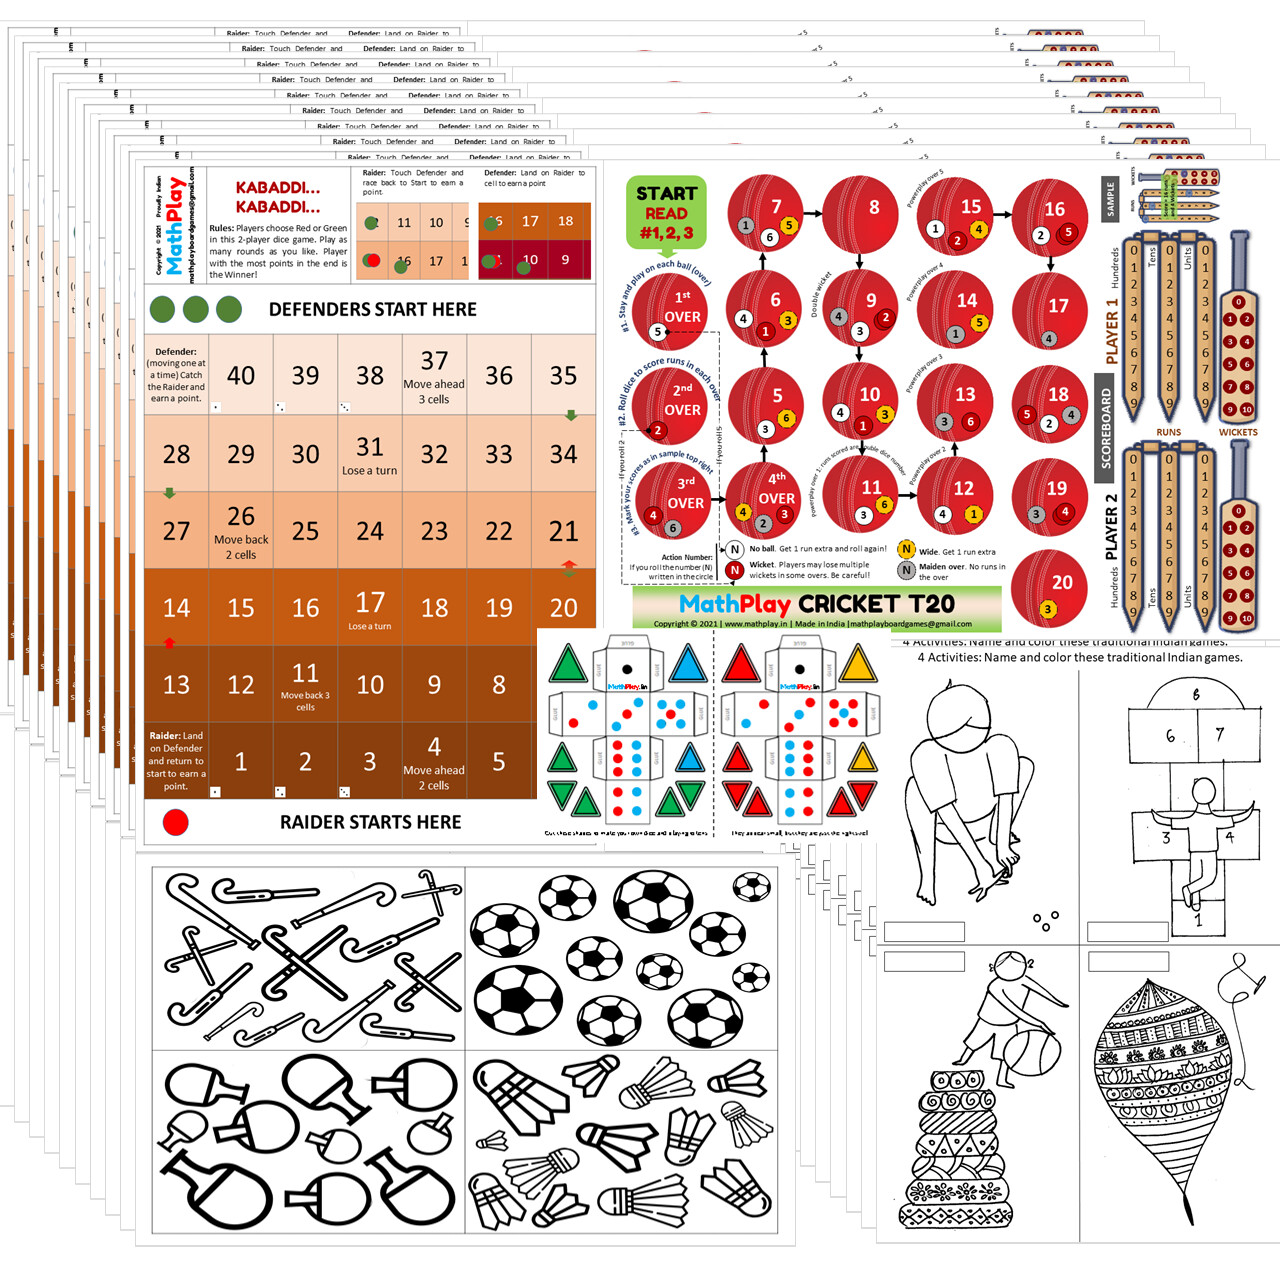 MathPlay Birthday Return Gift for Kids - Sports (Pack of 10) - 12 in 1 Activities, Educational, Games, Painting, Dice Making Activities